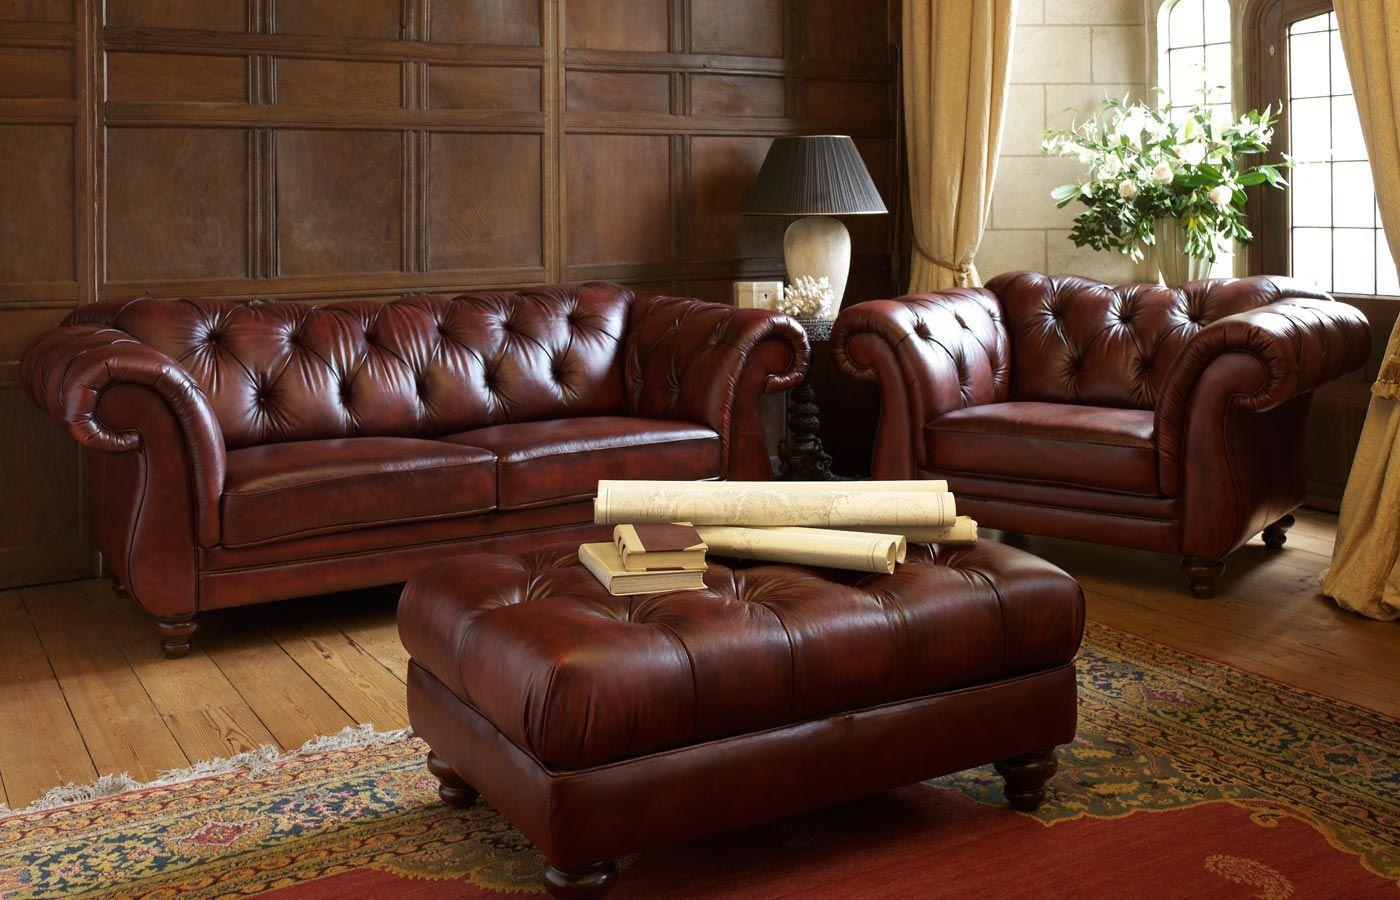 Chesterfield Sofa / Leather / 2 Seater / Brown – Heathcote In Red Leather Chesterfield Chairs (Image 11 of 20)